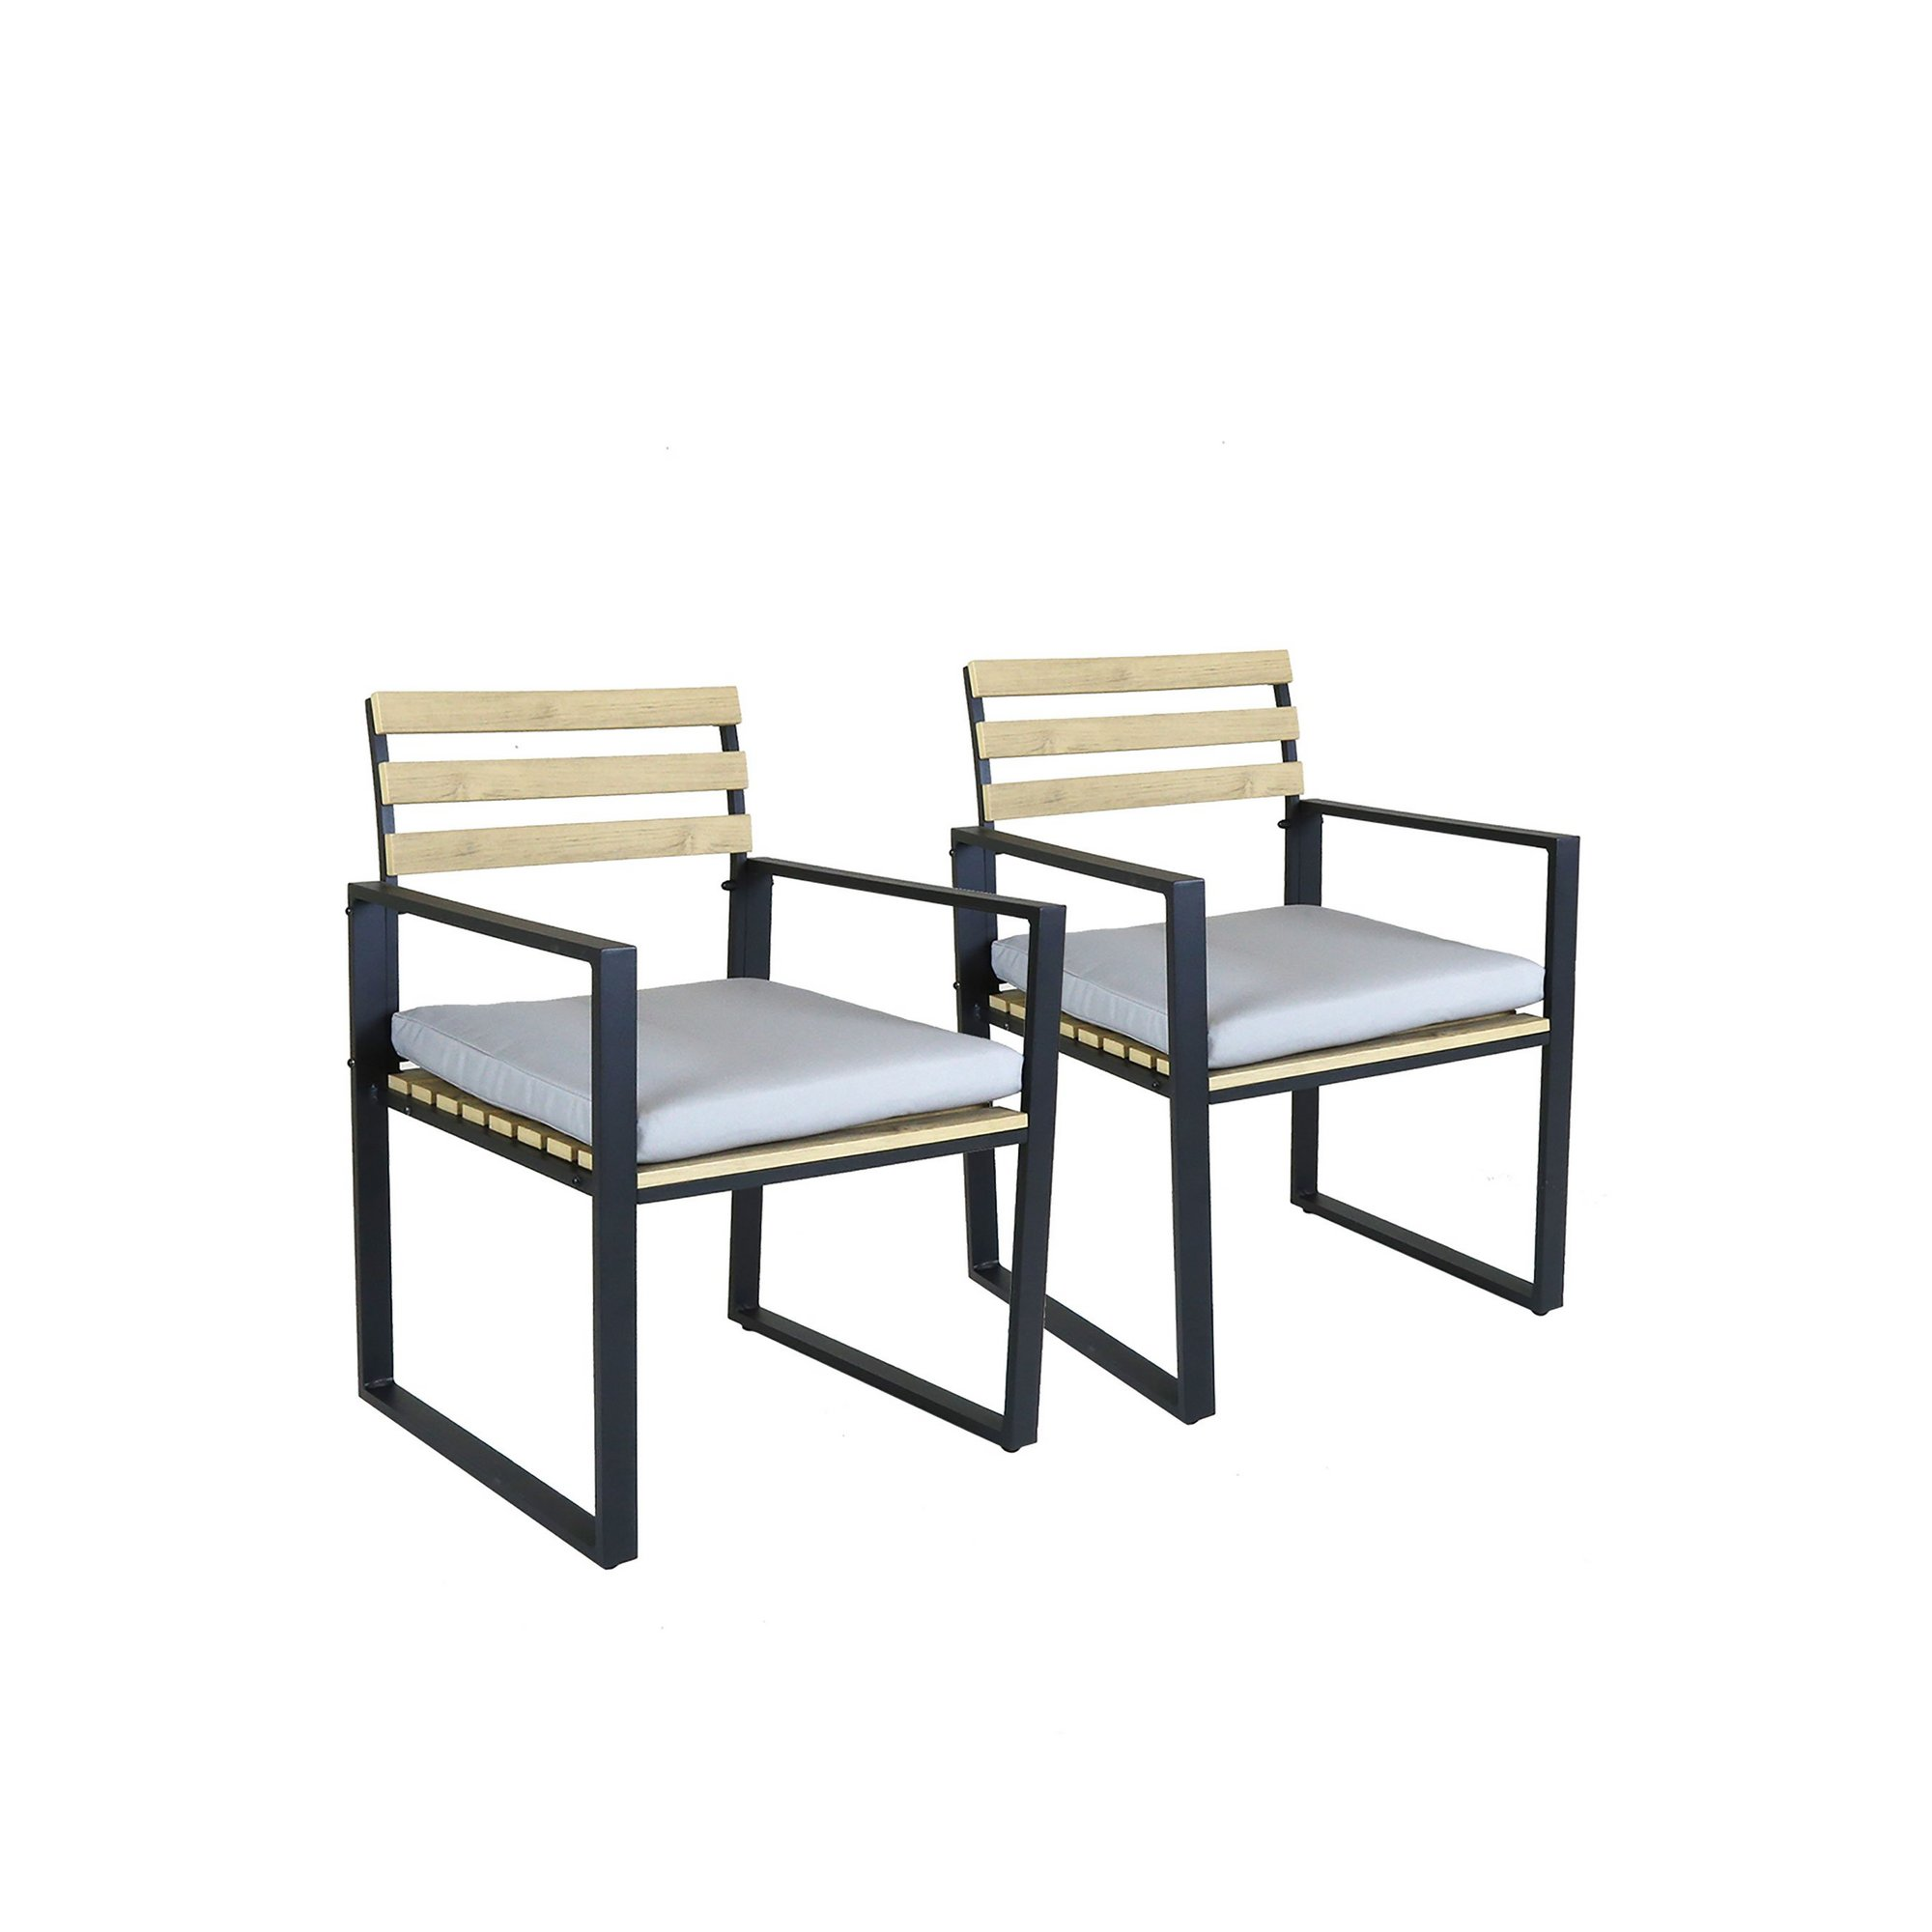 Image of Charles Bentley Polywood and Extrusion Aluminium Pair of Chairs